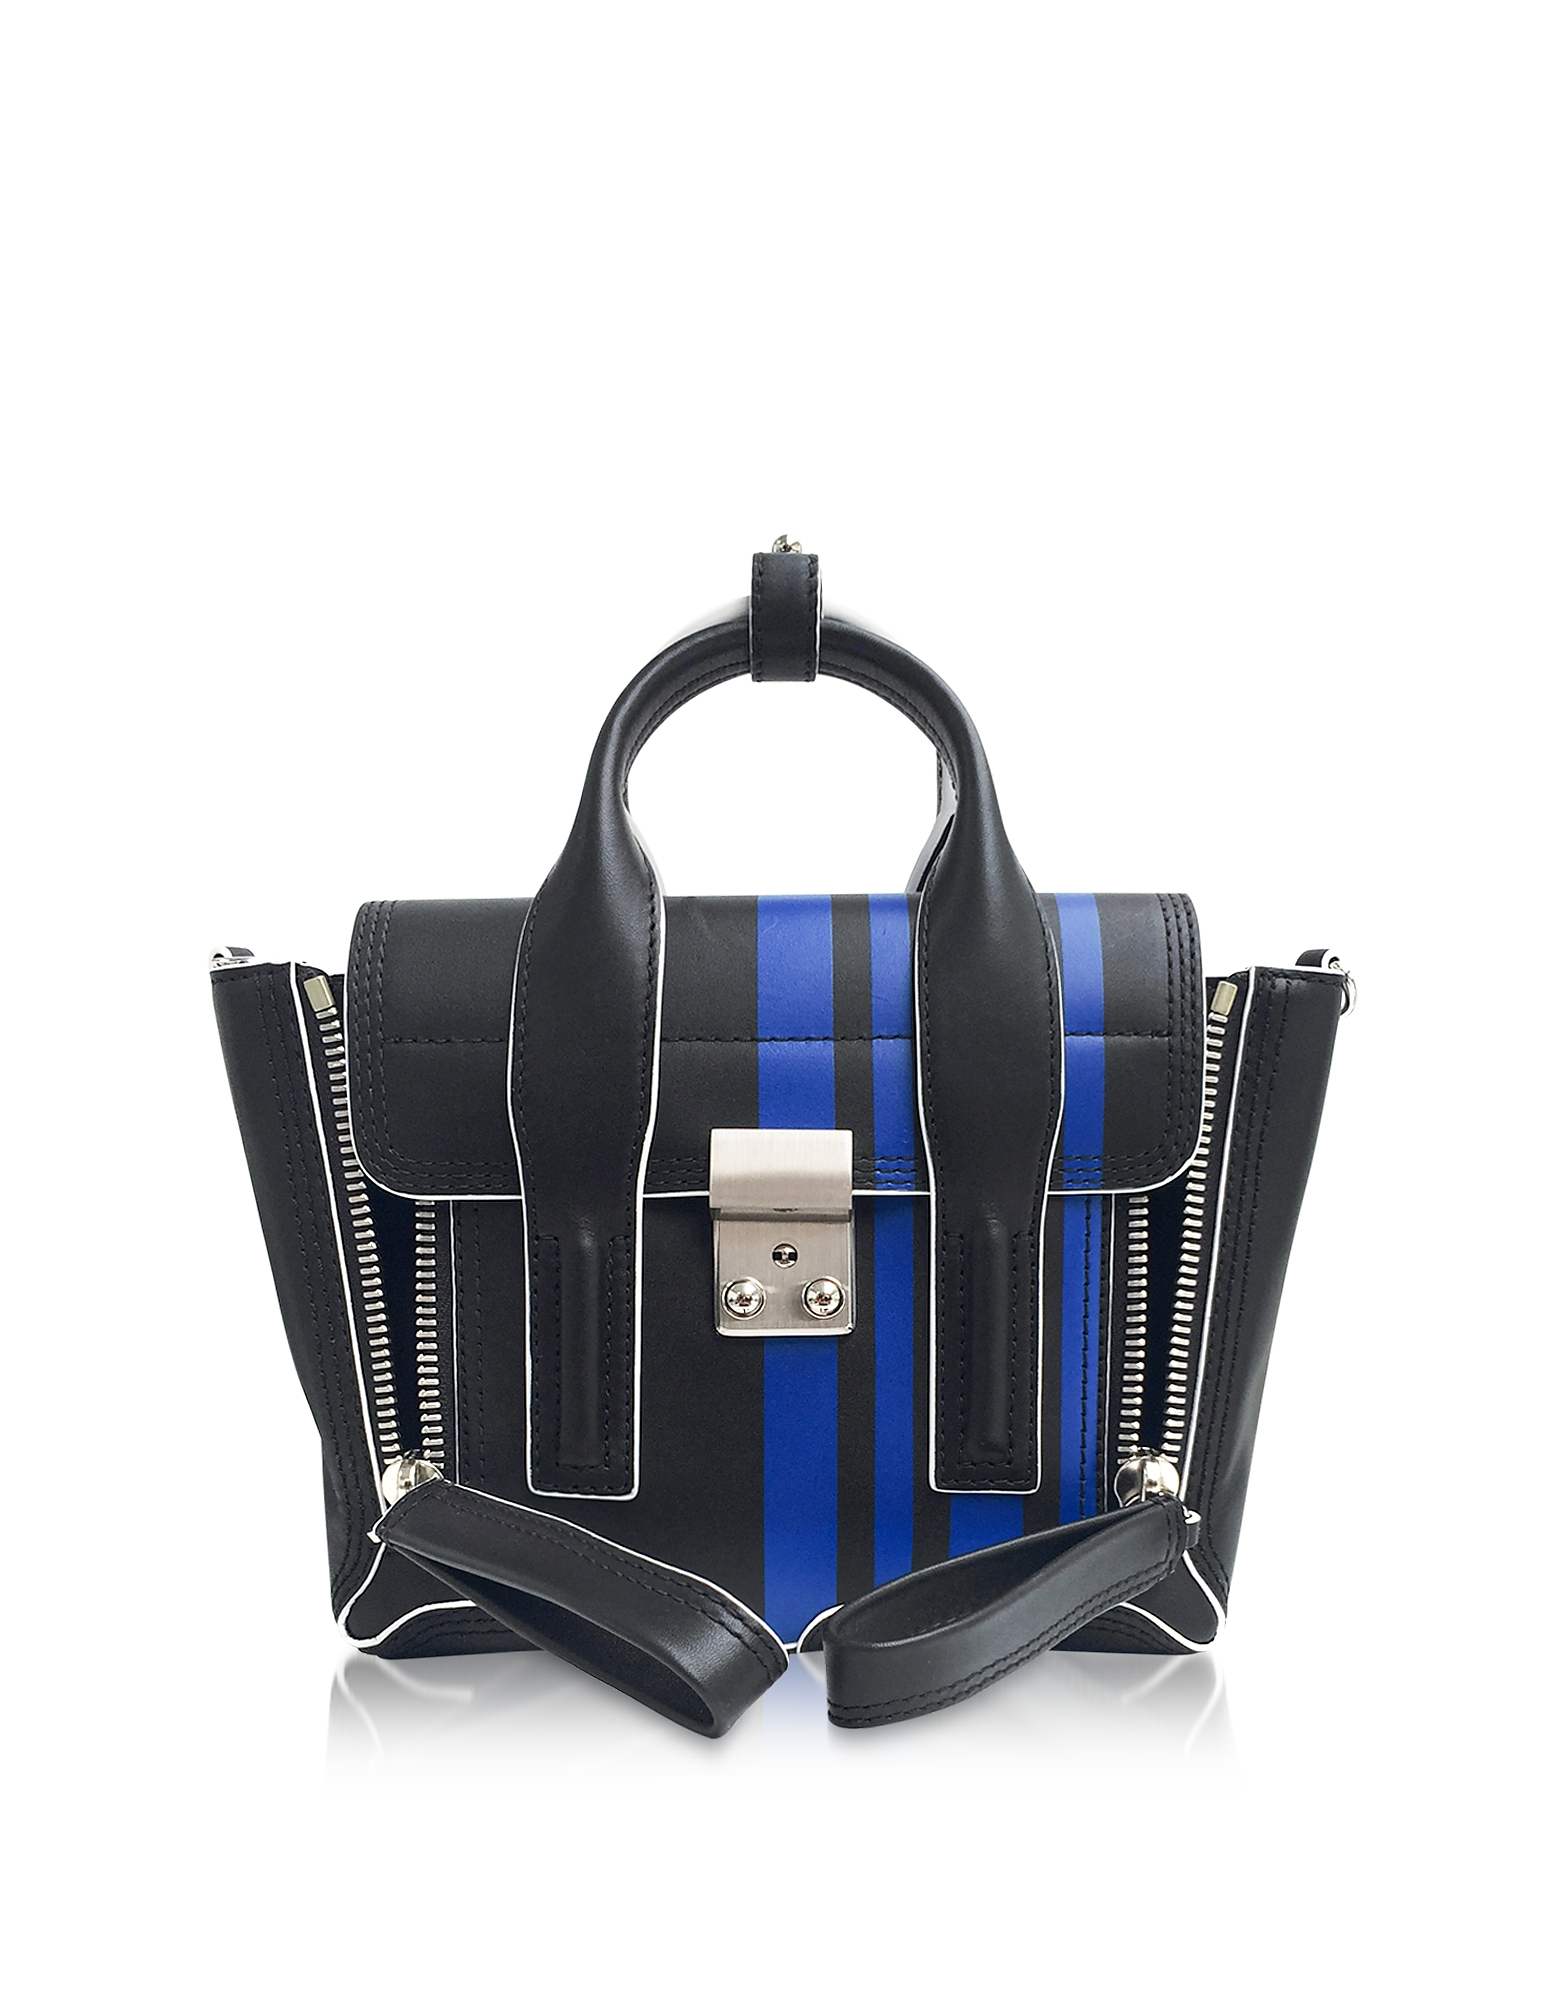 3.1 Phillip Lim Handbags, Navy Blue Leather Pashli Mini Satchel Bag w/Bluette Stripes